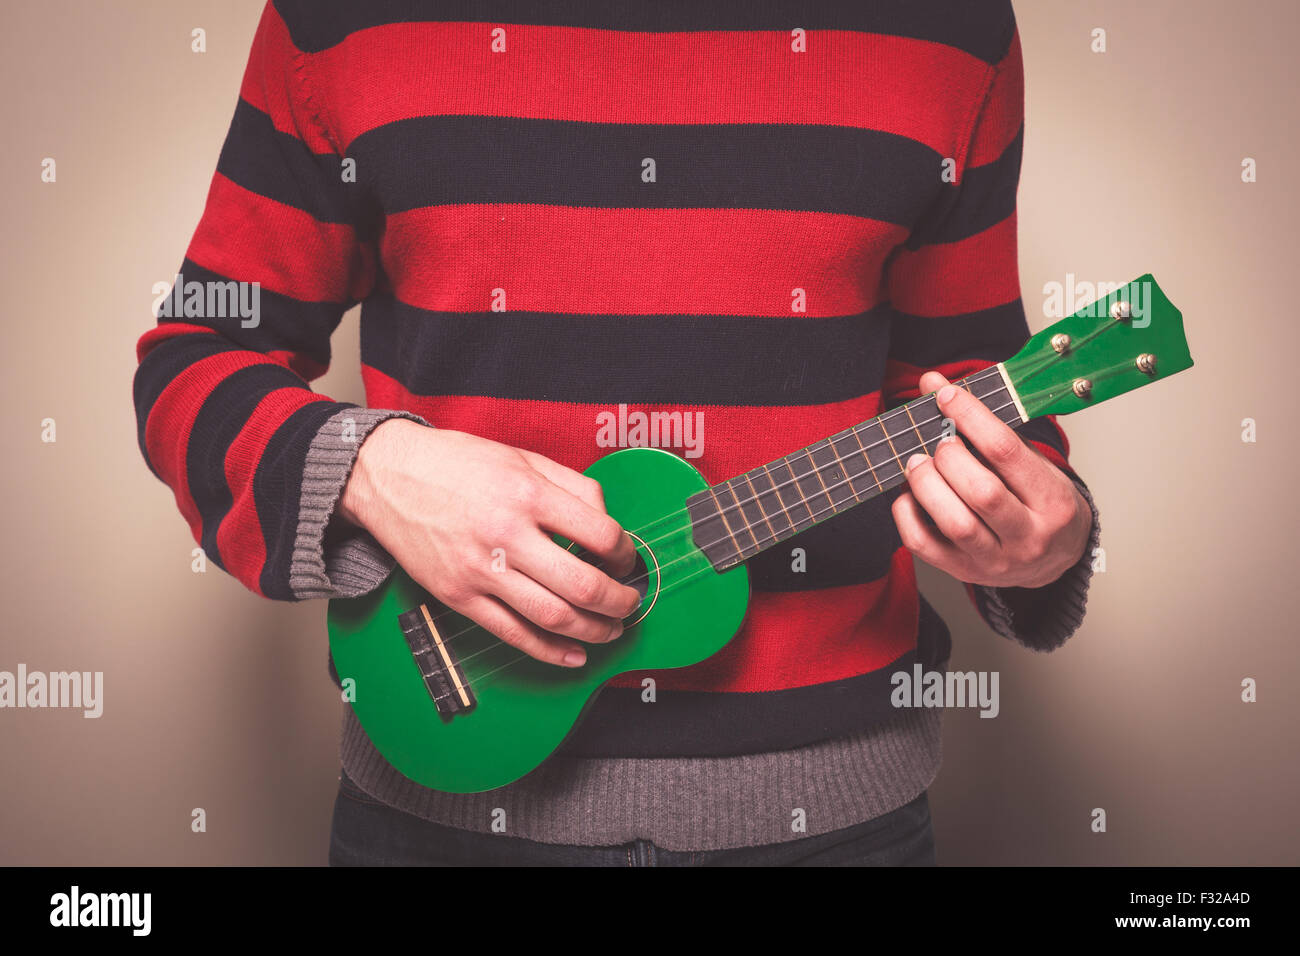 Playing A Chord Stock Photos Playing A Chord Stock Images Alamy